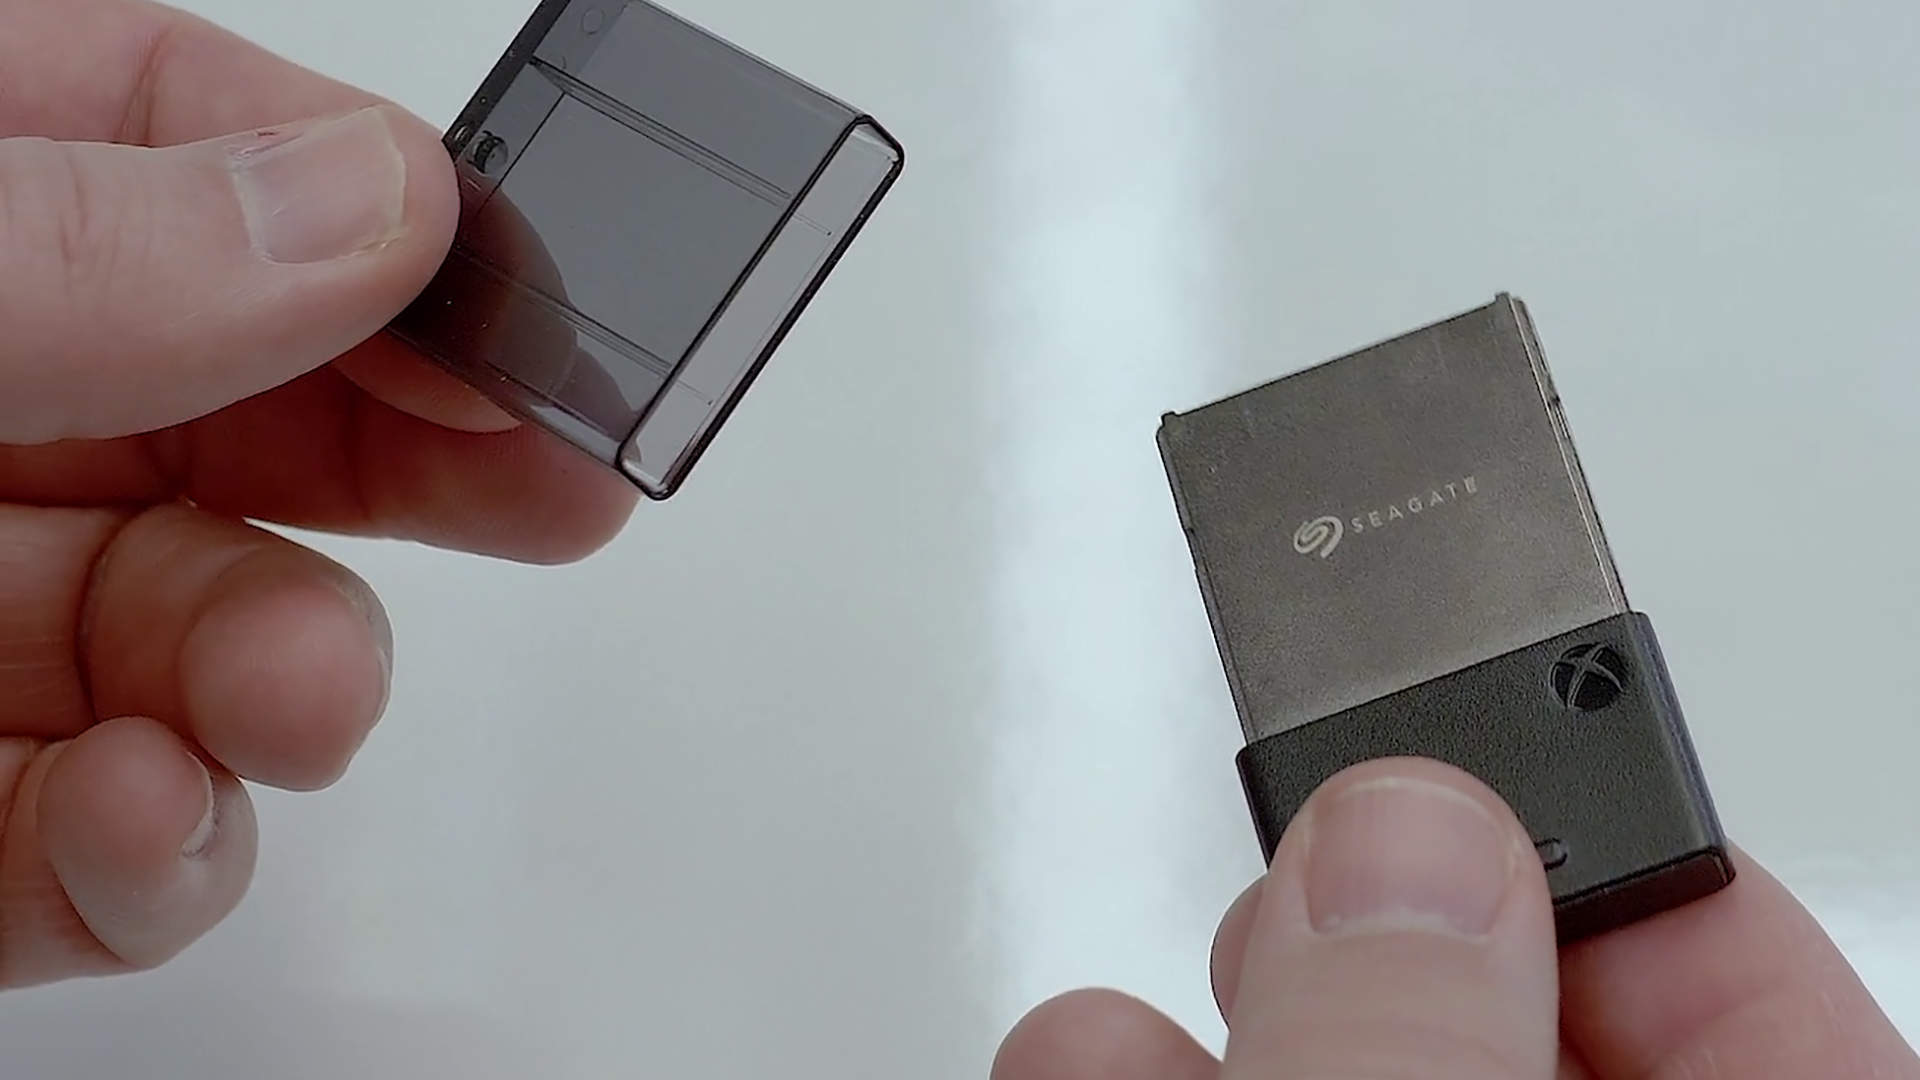 next-gen ssd ps5 external storage solutions